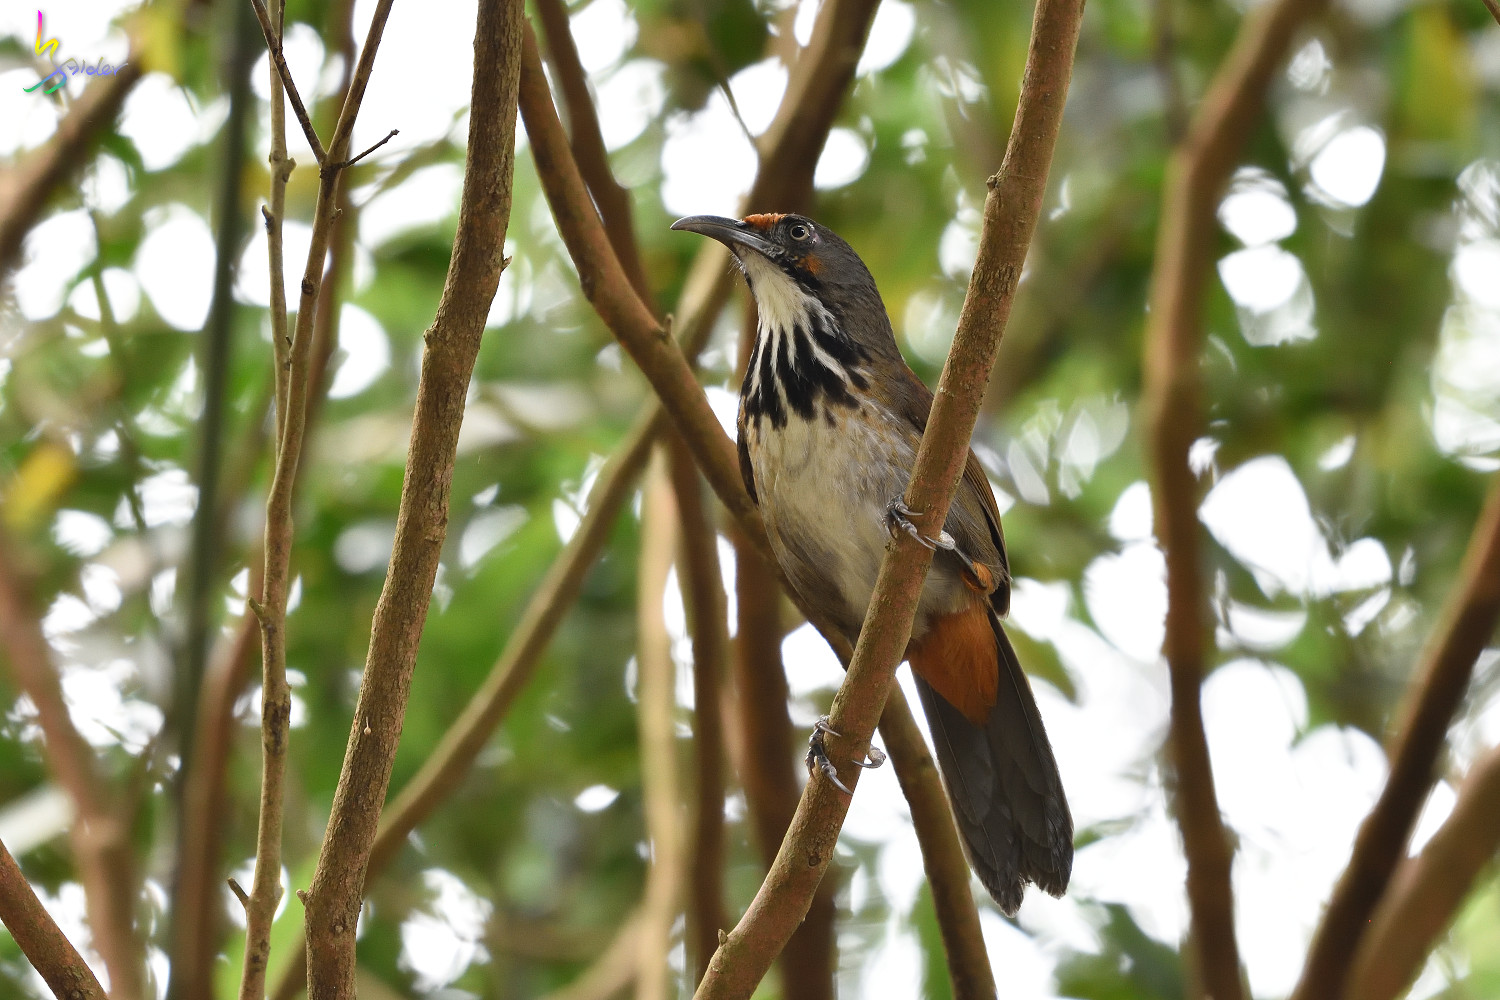 Rusty-cheeked_Scimitar_Babbler_2098